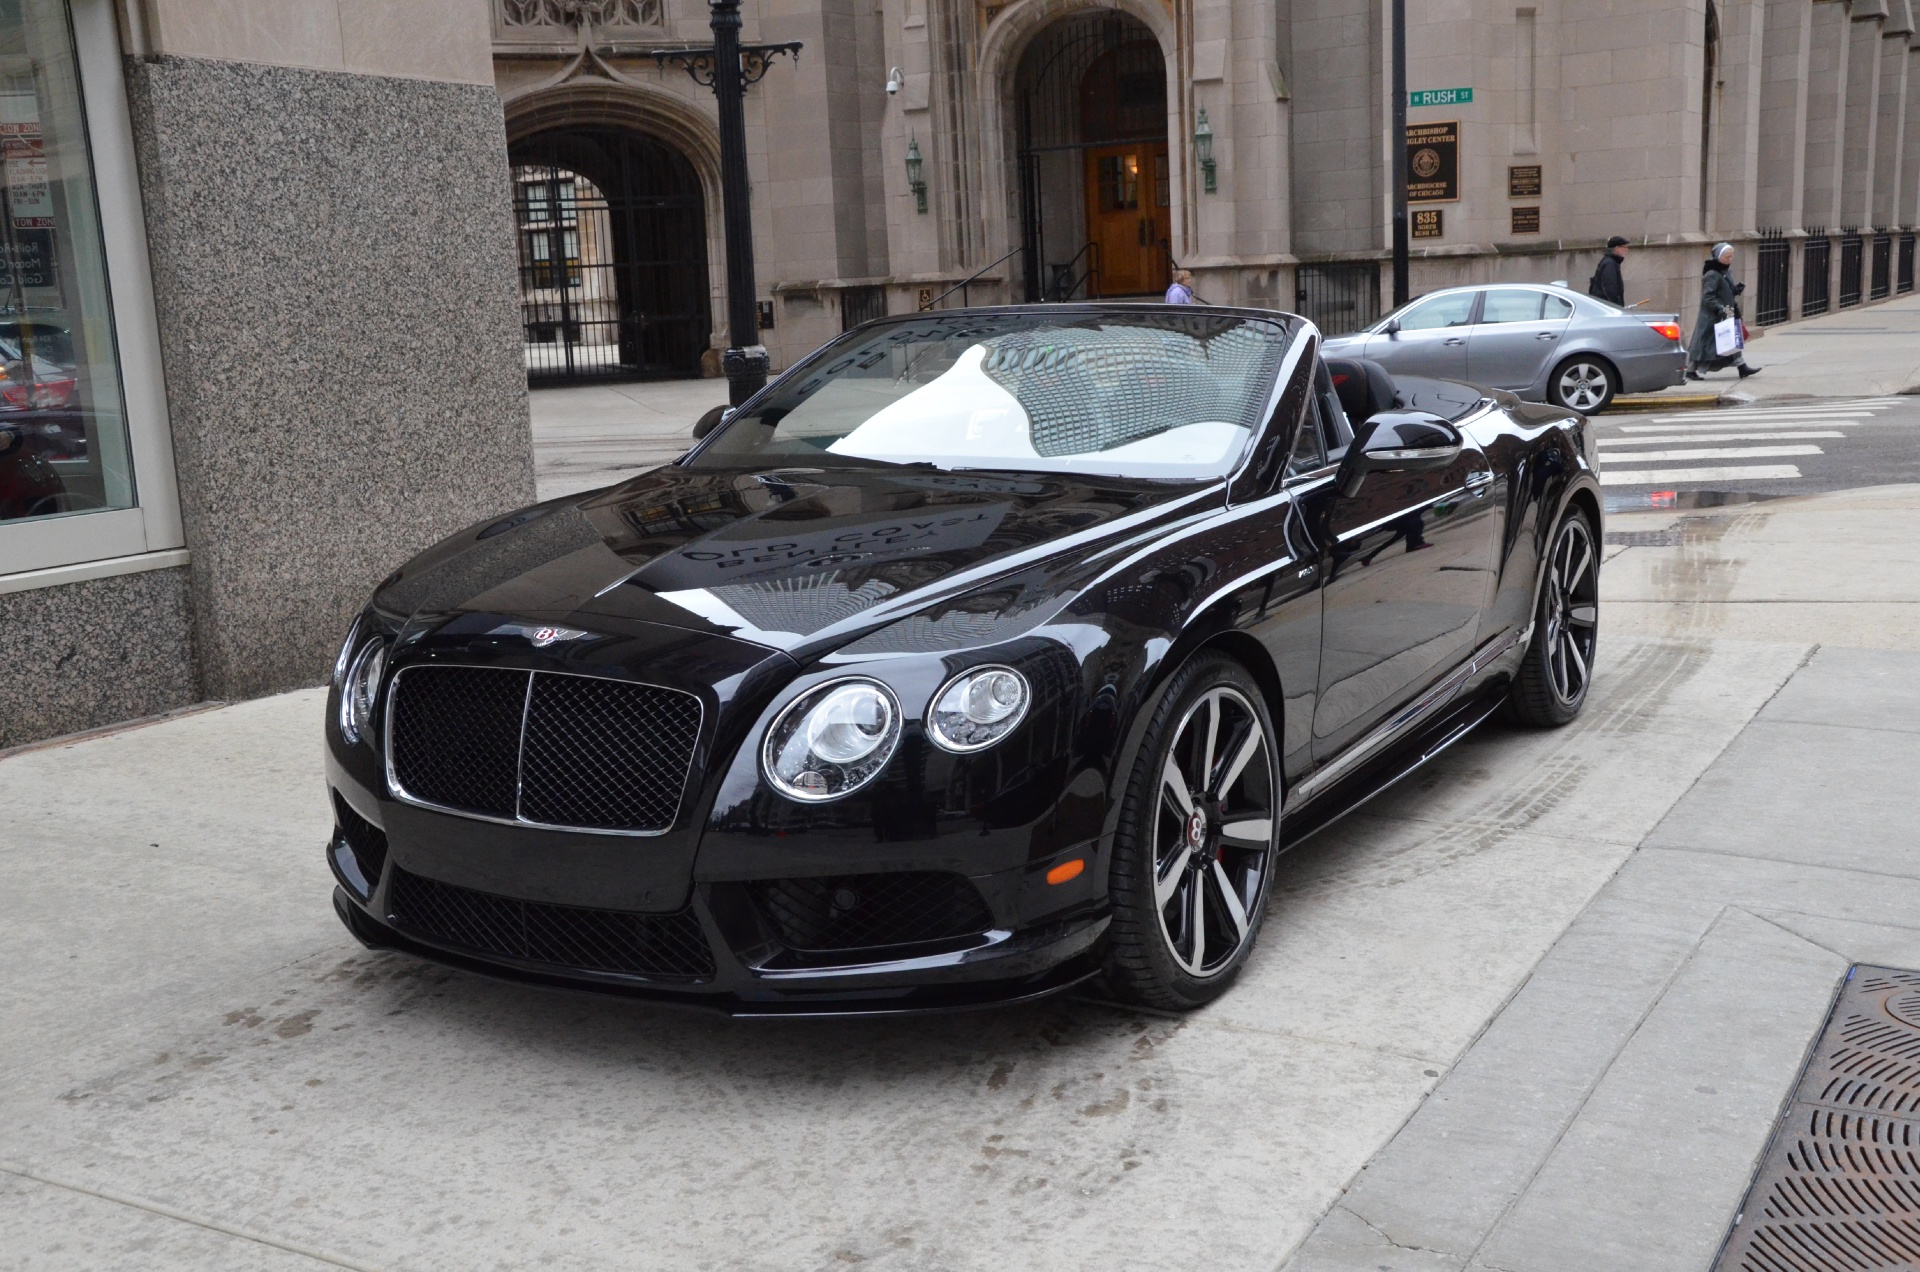 2014 Bentley Continental Gtc V8 S Stock B584 S For Sale